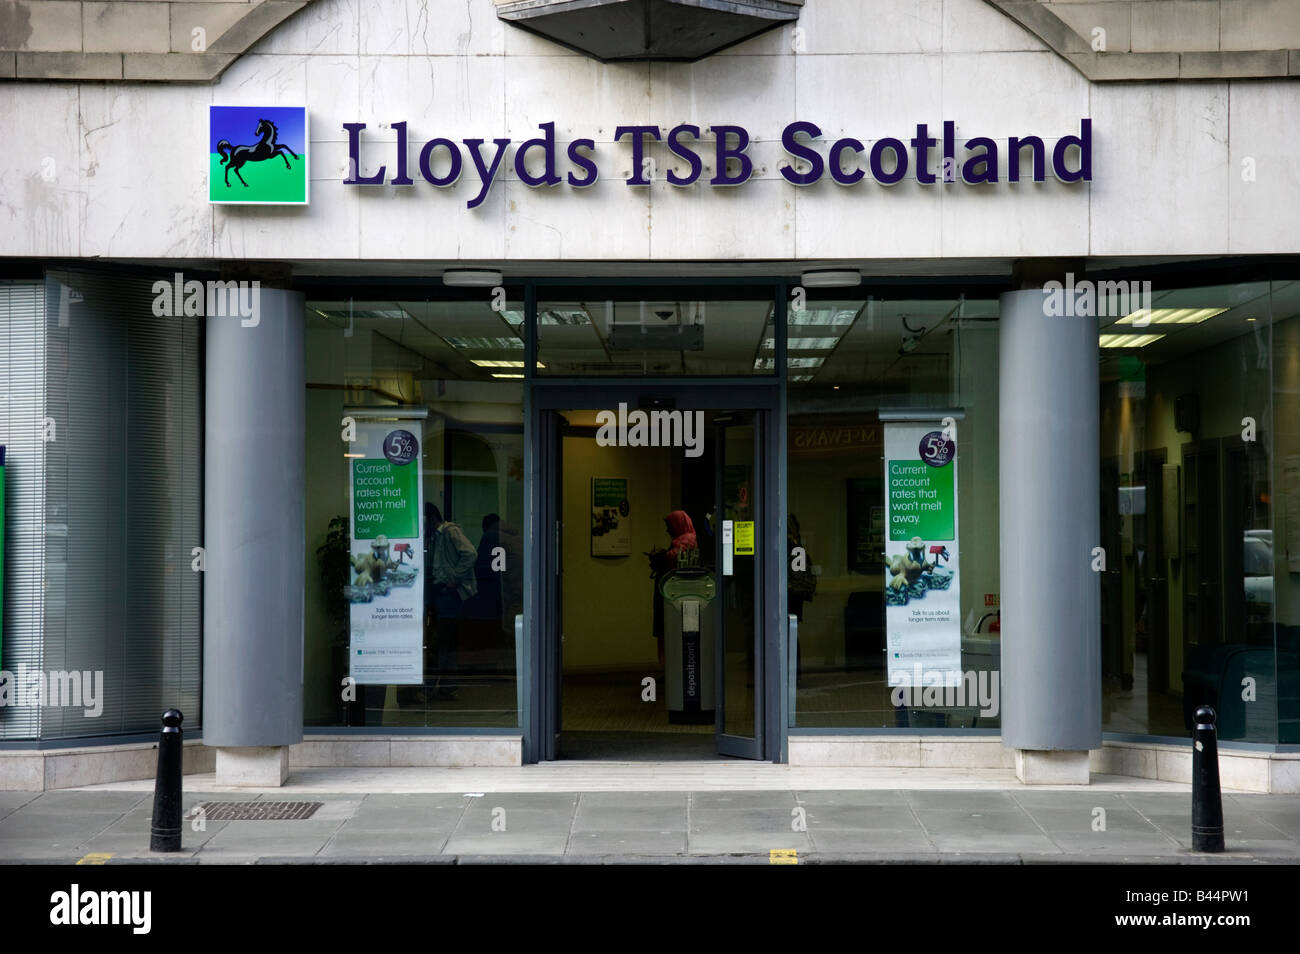 Sign for Lloyds TSB Scotland above branch in Edinburgh, Scotland, UK, Europe - Stock Image